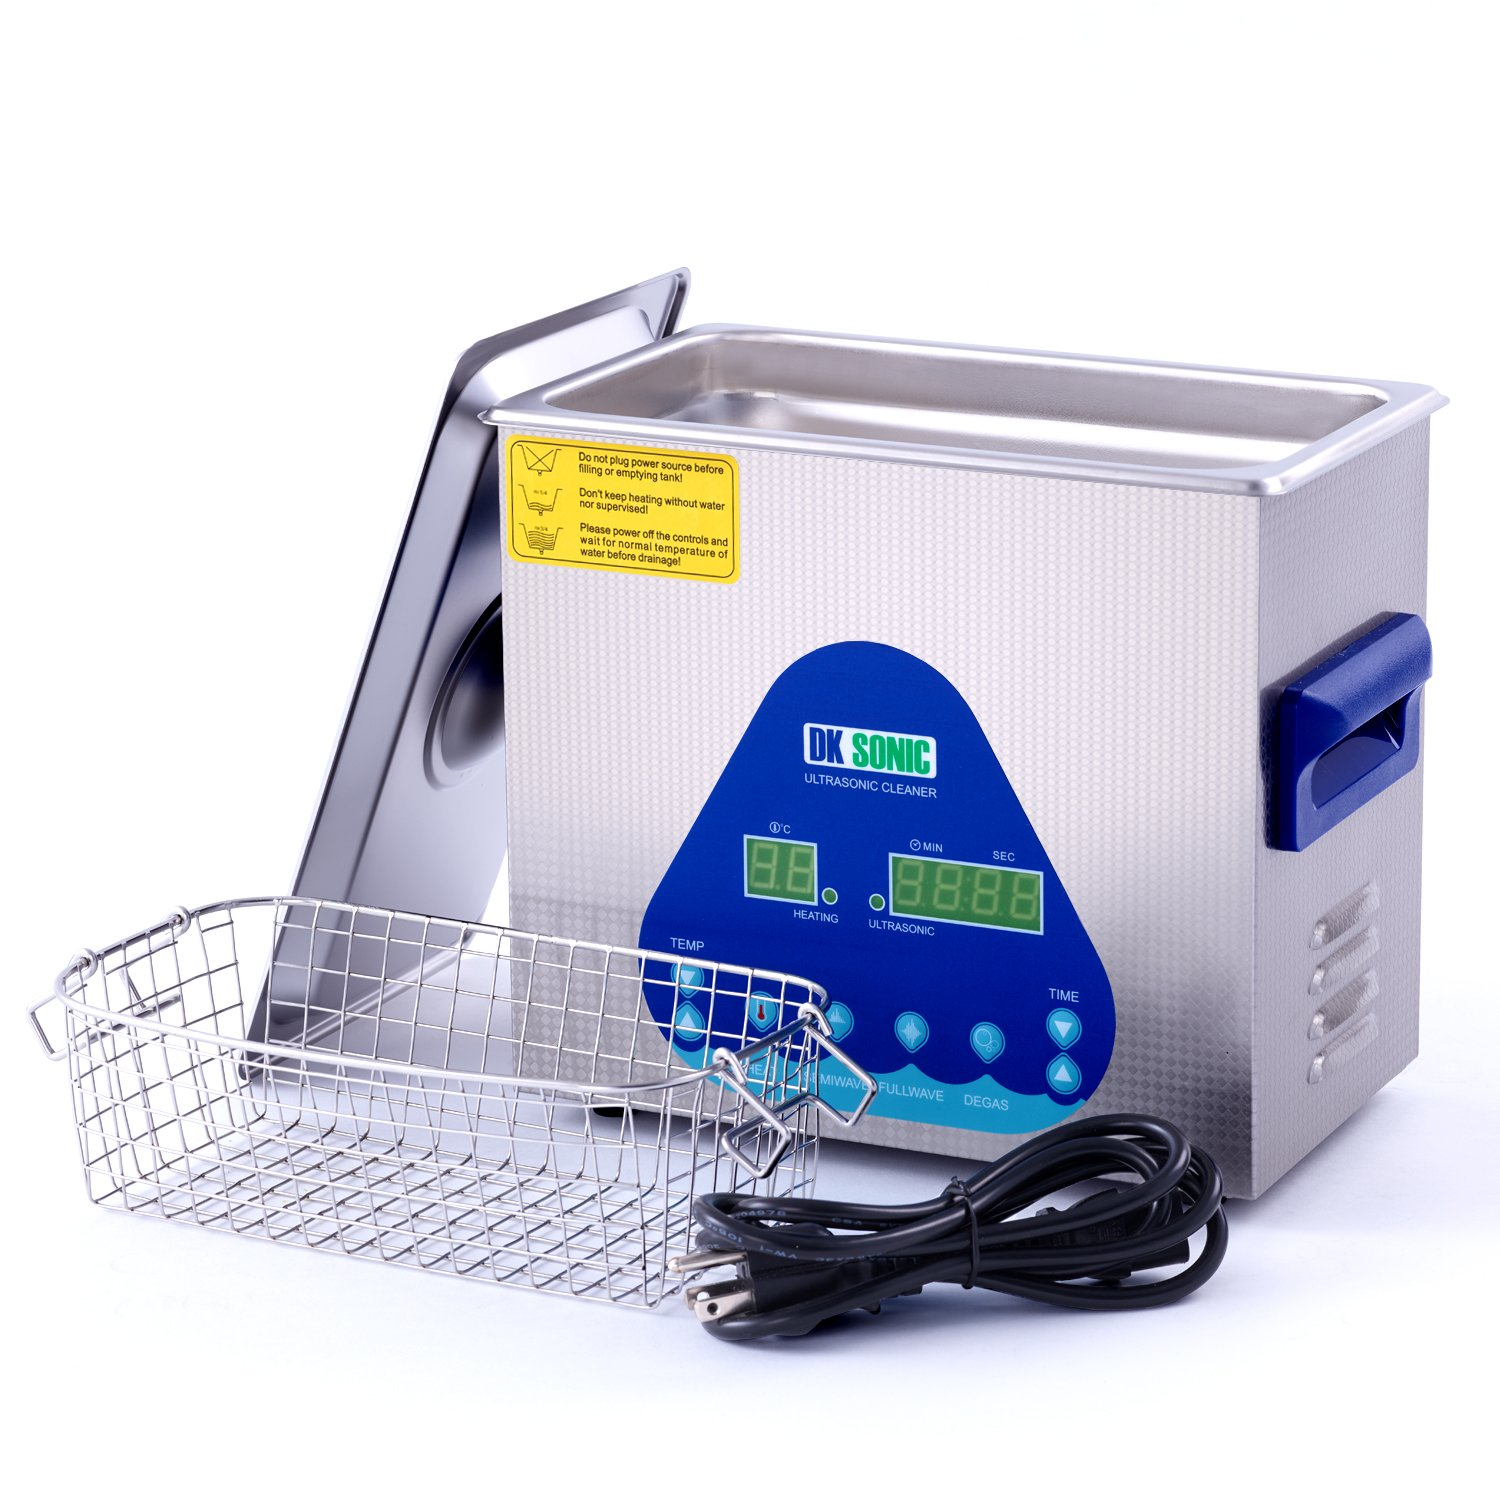 Digital Ultrasonic Gun Cleaner Heated - DK SONIC 3L 120W Ultrasonic Denture Cleaner with Heater Basket for Parts Jewelry Carburetor Eyeglass Ring Fuel Injector Dental Circuit Board Carb 28/40KHz